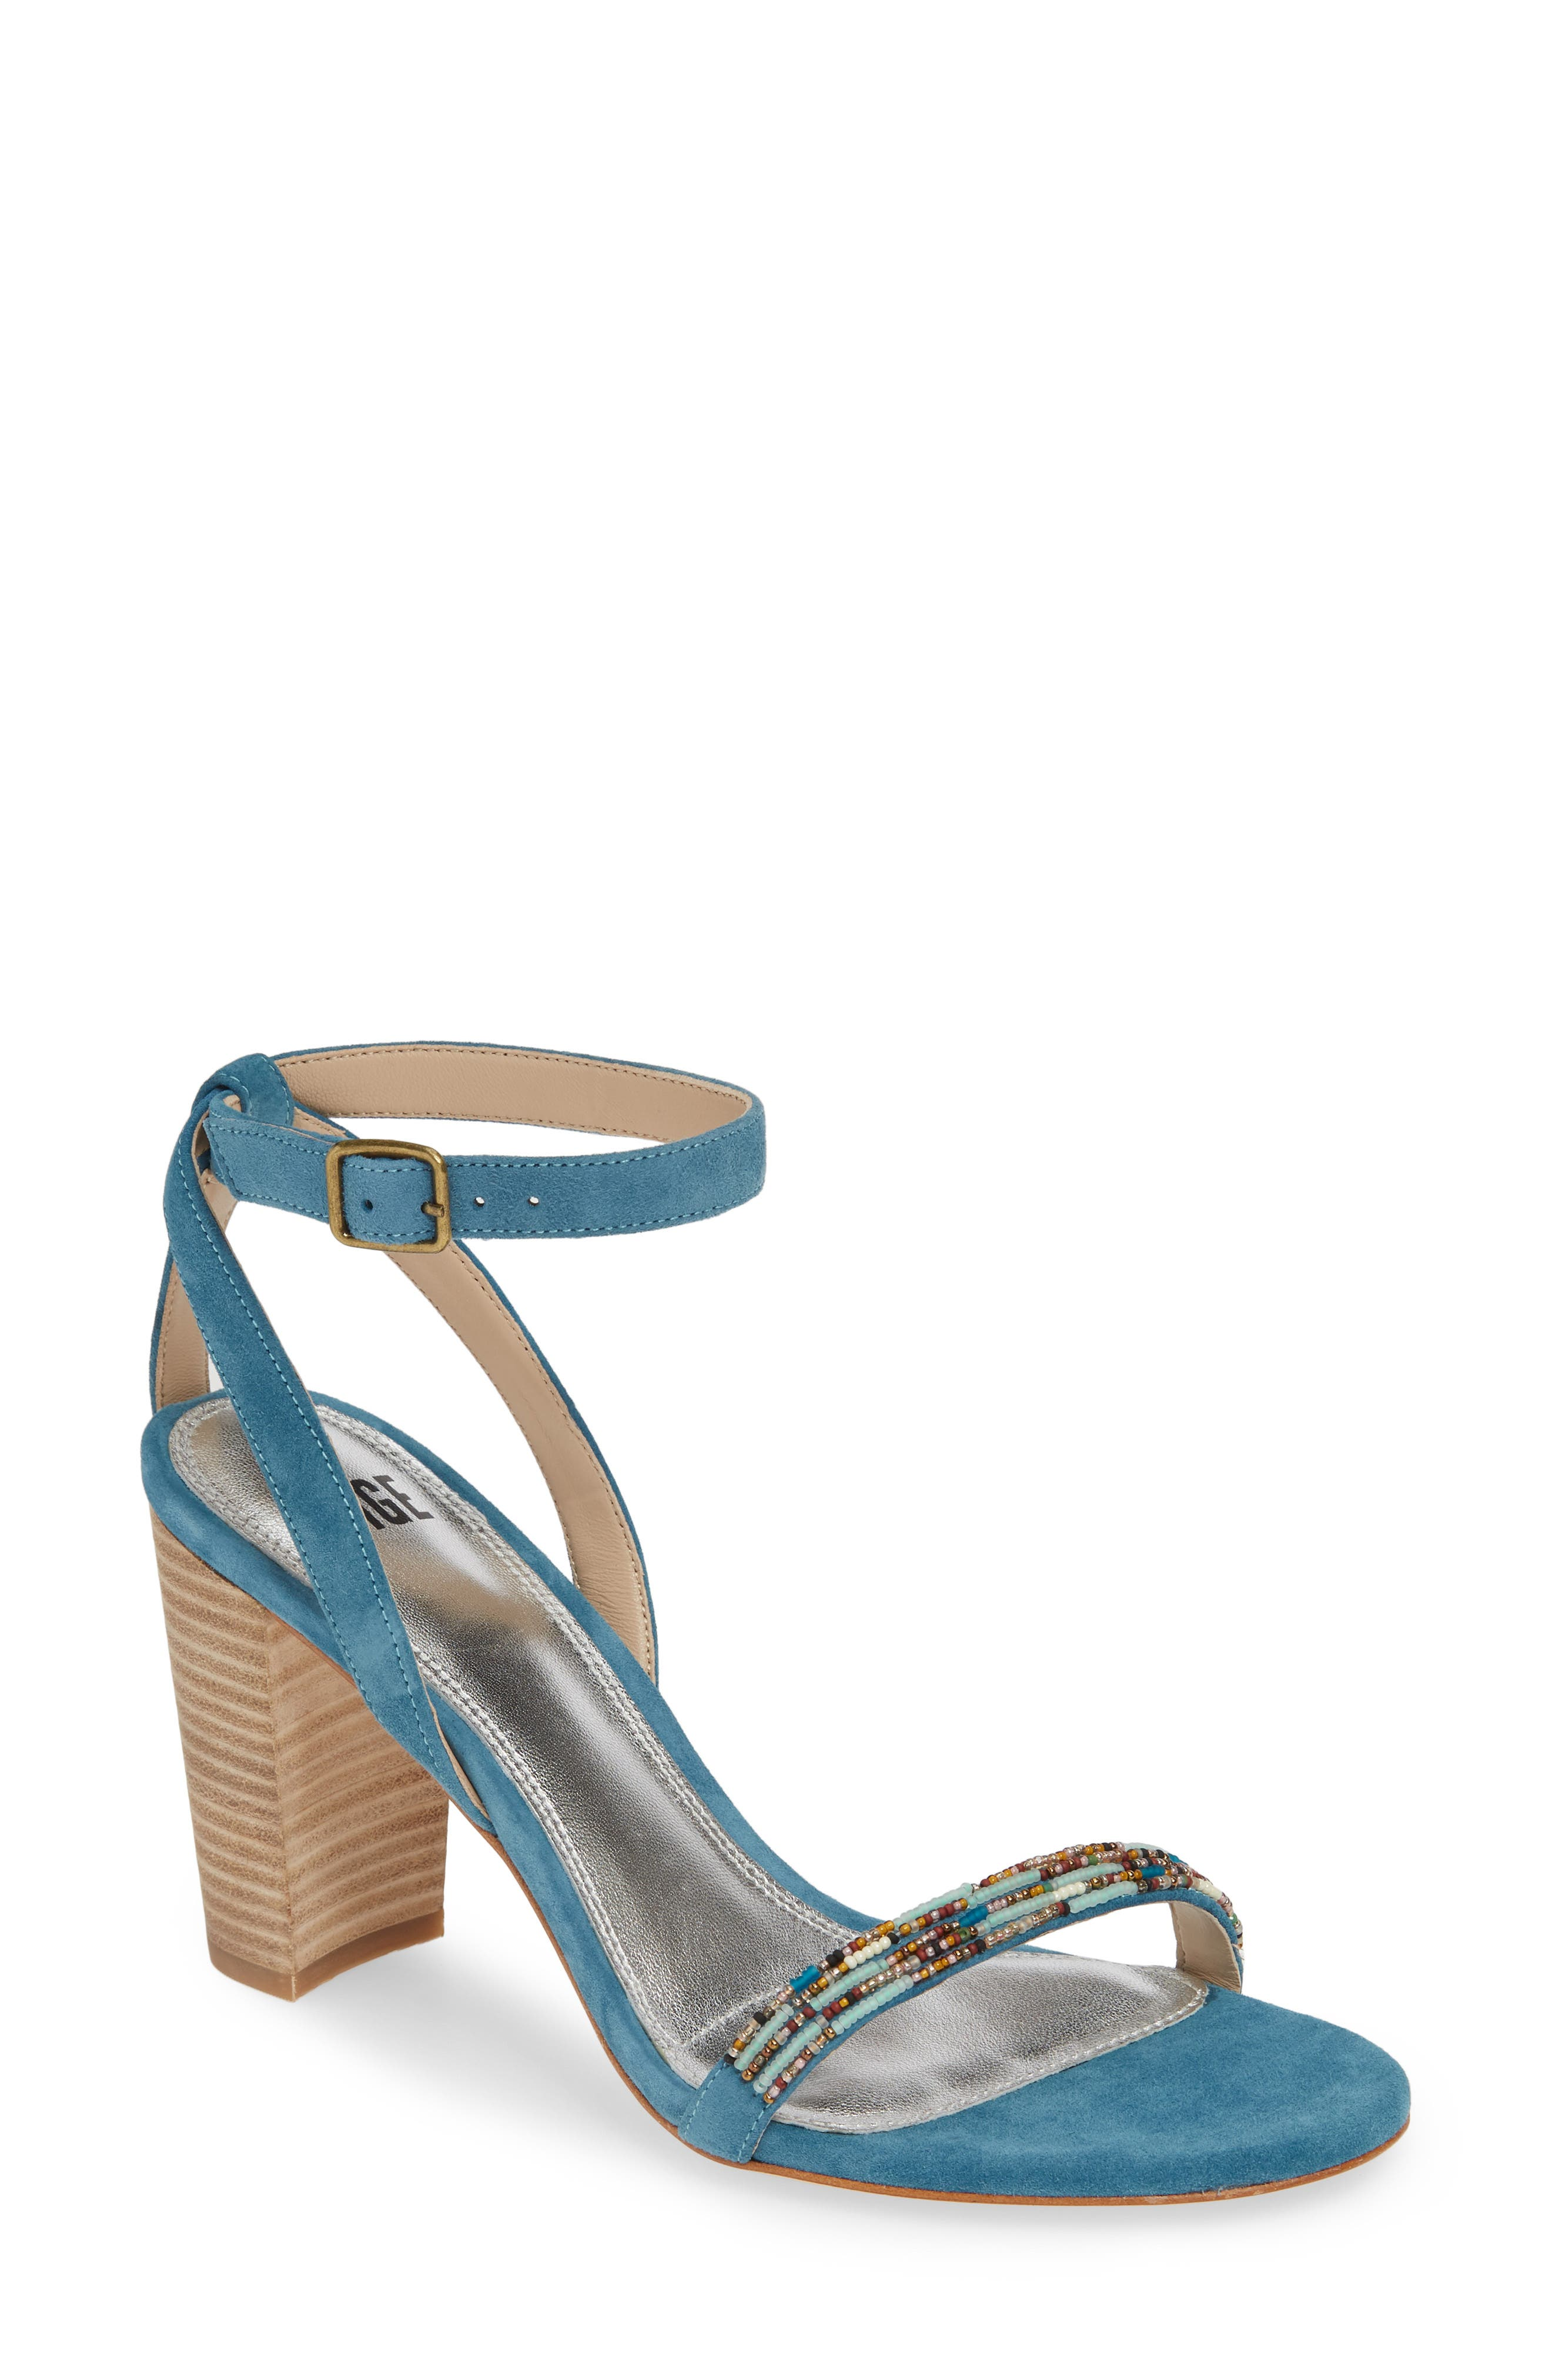 PAIGE, Gabriella Beaded Sandal, Main thumbnail 1, color, BLUE